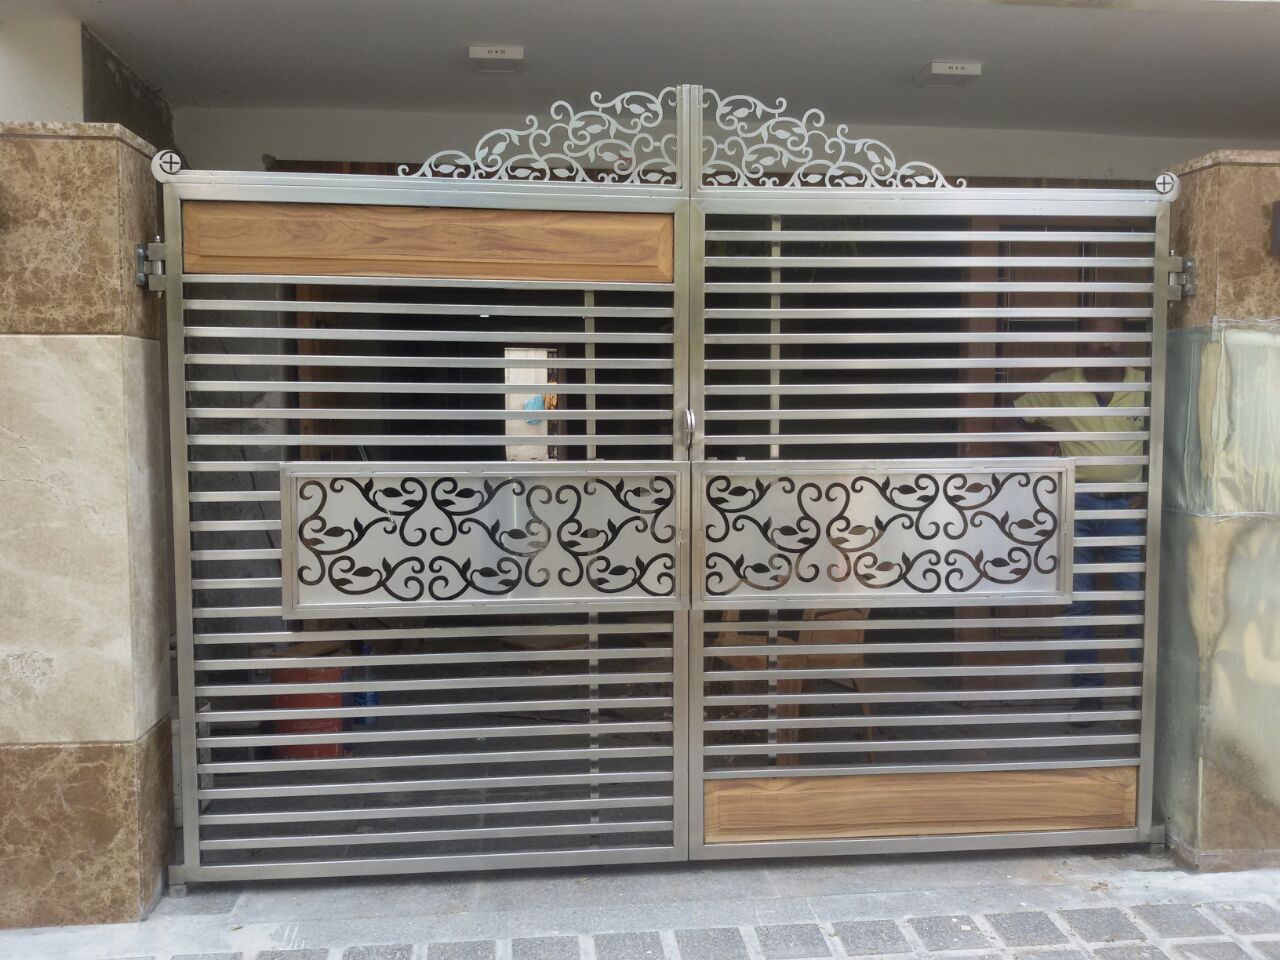 Forget Design Cnc بحث Google نوافذ وابواب Iron Gate